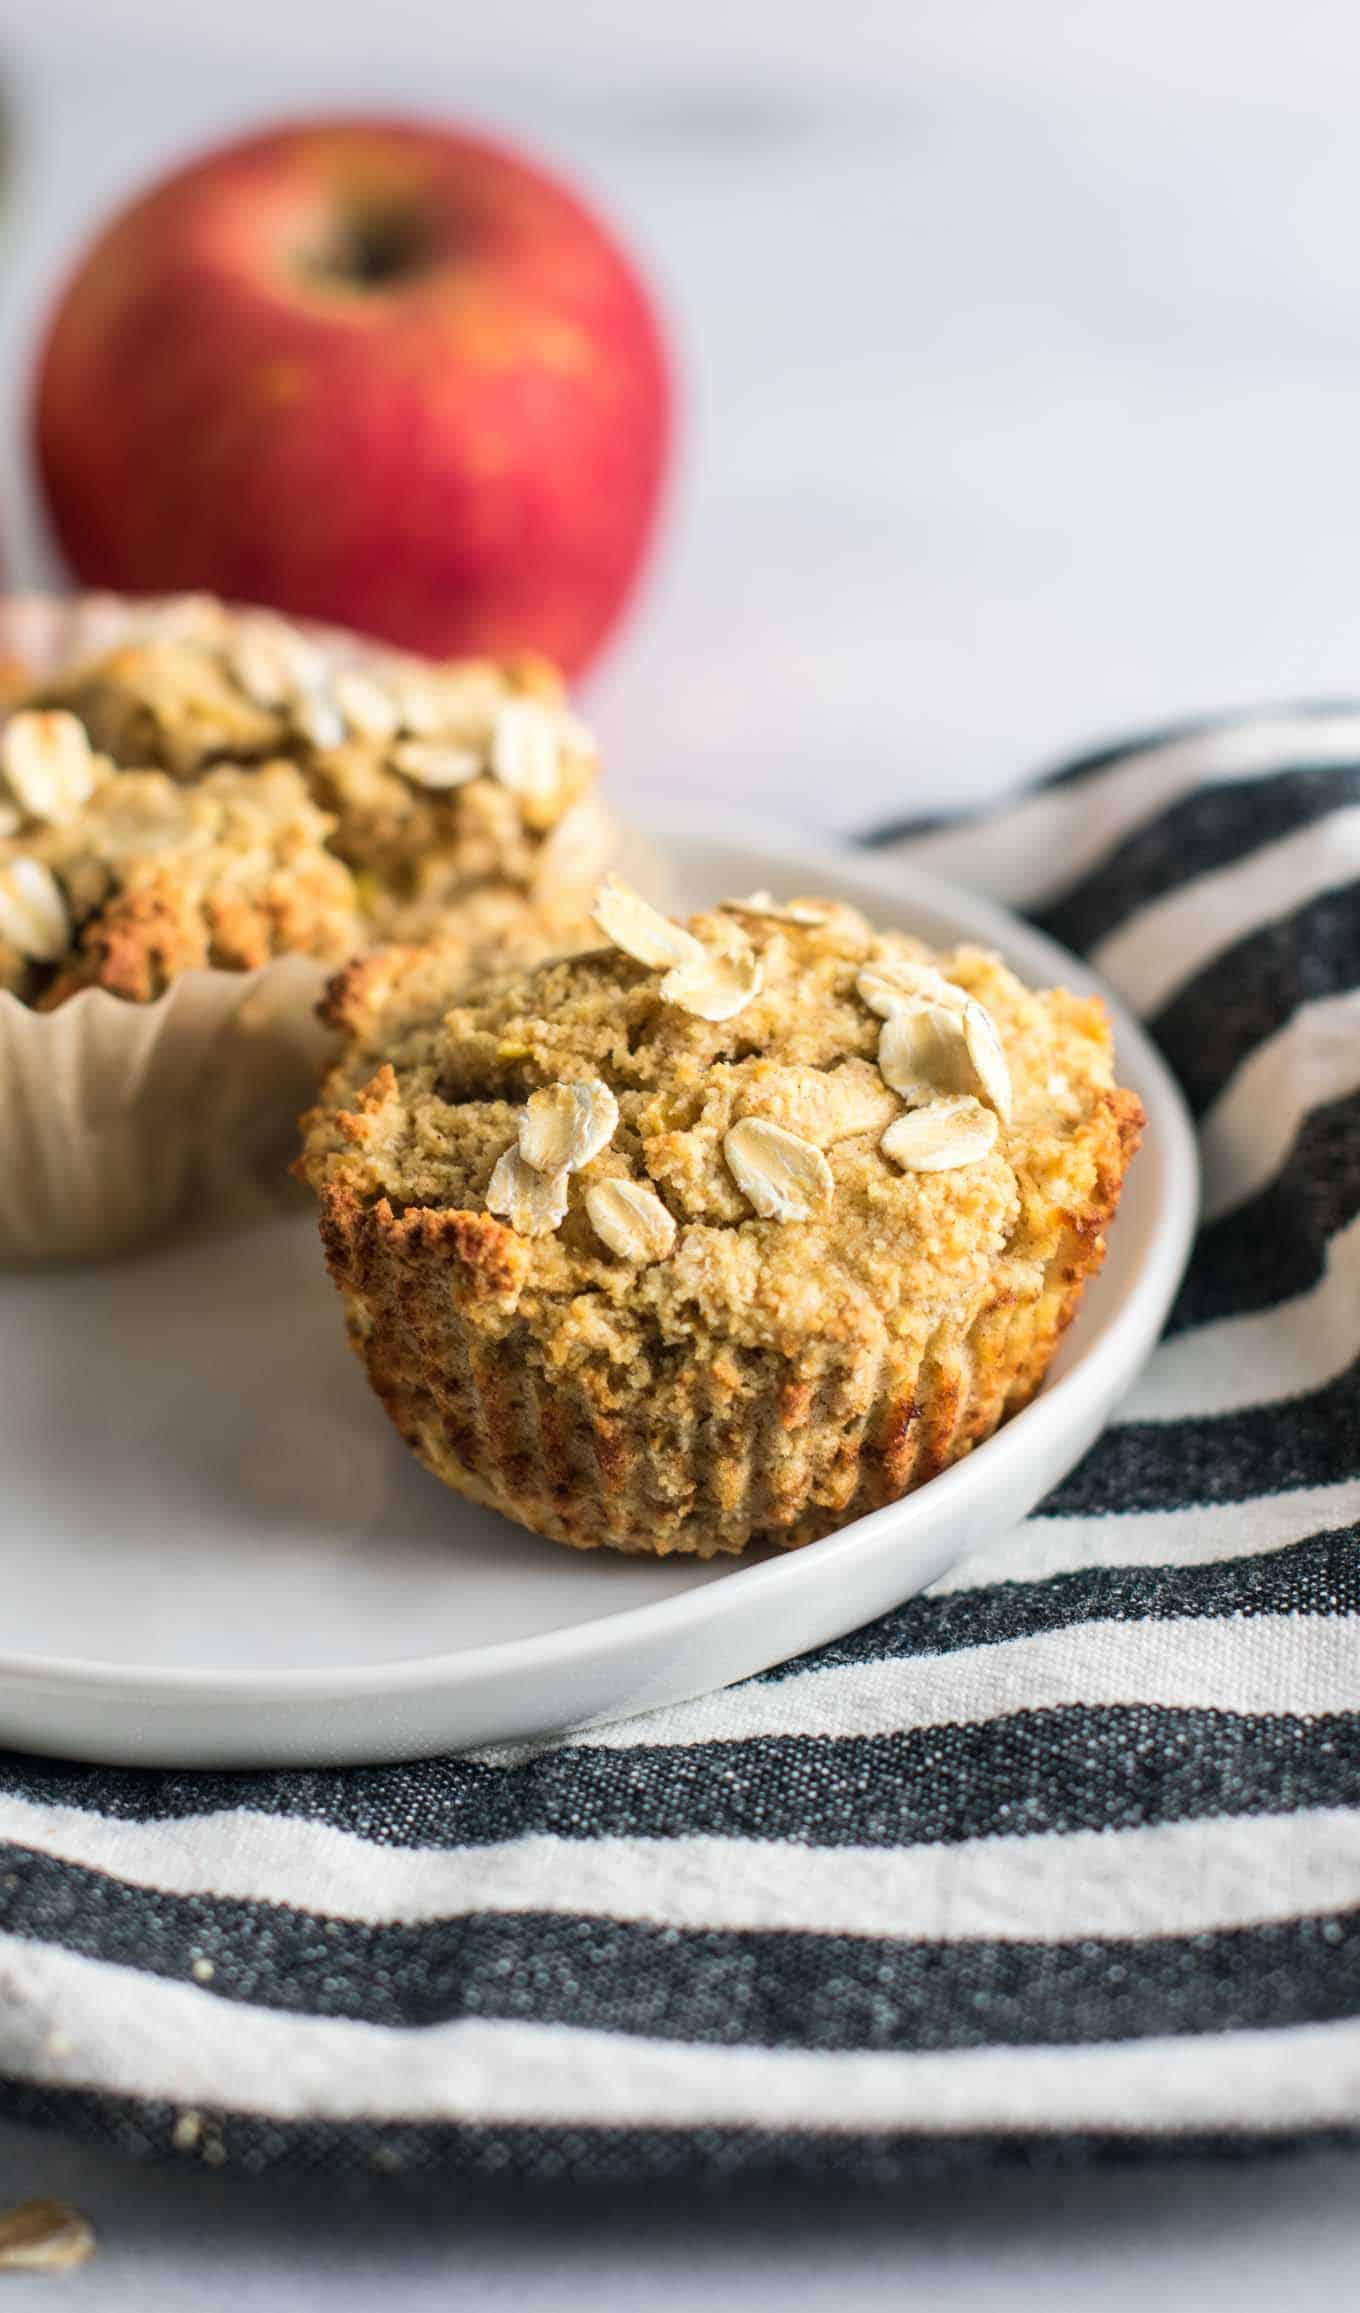 Coconut flour apple muffins. Naturally gluten free and so soft and delicious. They taste like apple pie to me! #glutenfree #applemuffins #oatflour #coconutflour #glutenfreemuffins #breakfast #glutenfreebreakfast #dairyfree